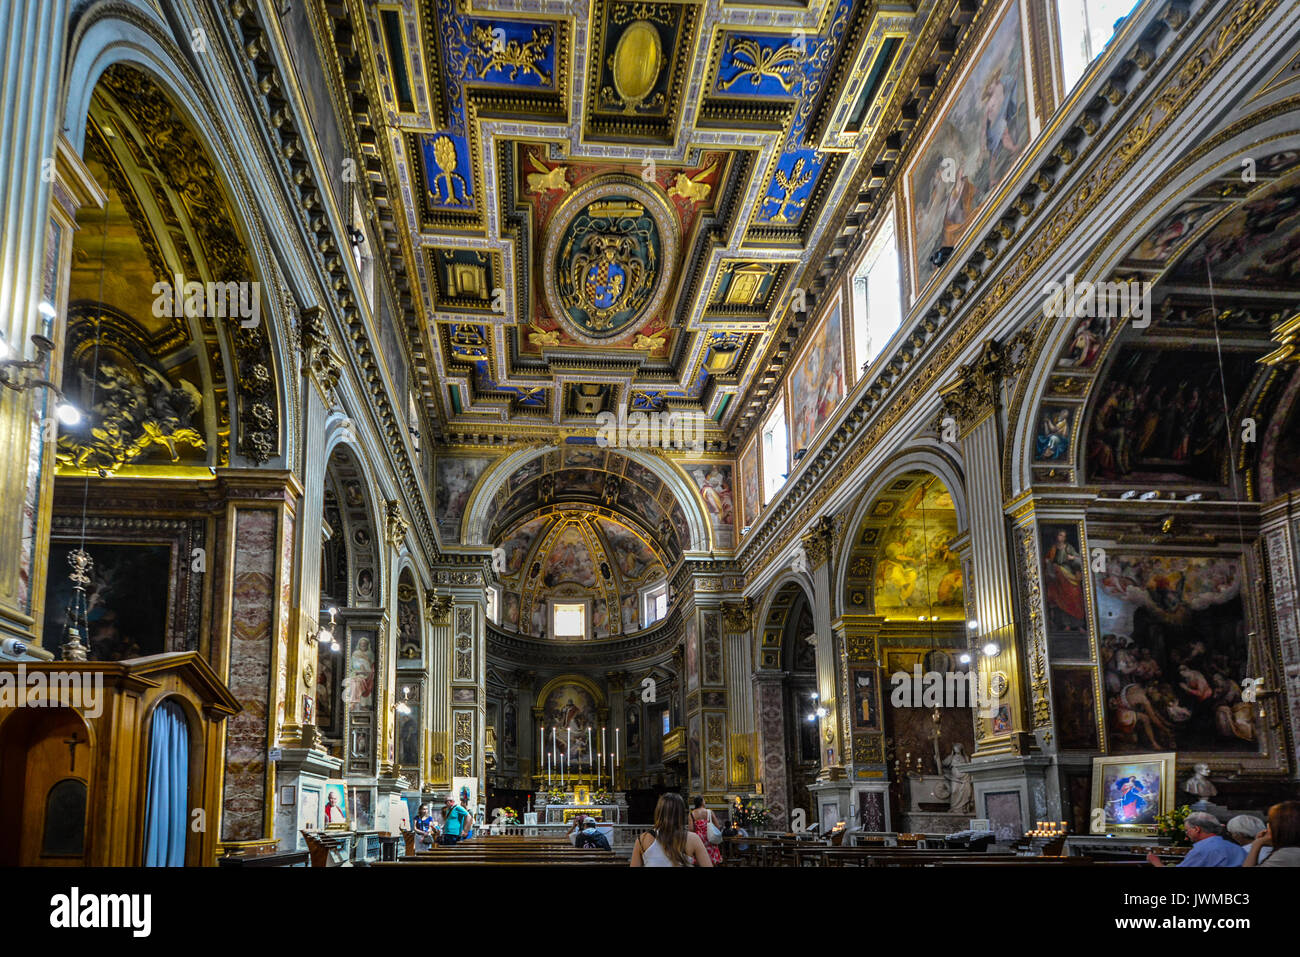 Interior of St Marcello al Corso church in Rome Italy - Stock Image